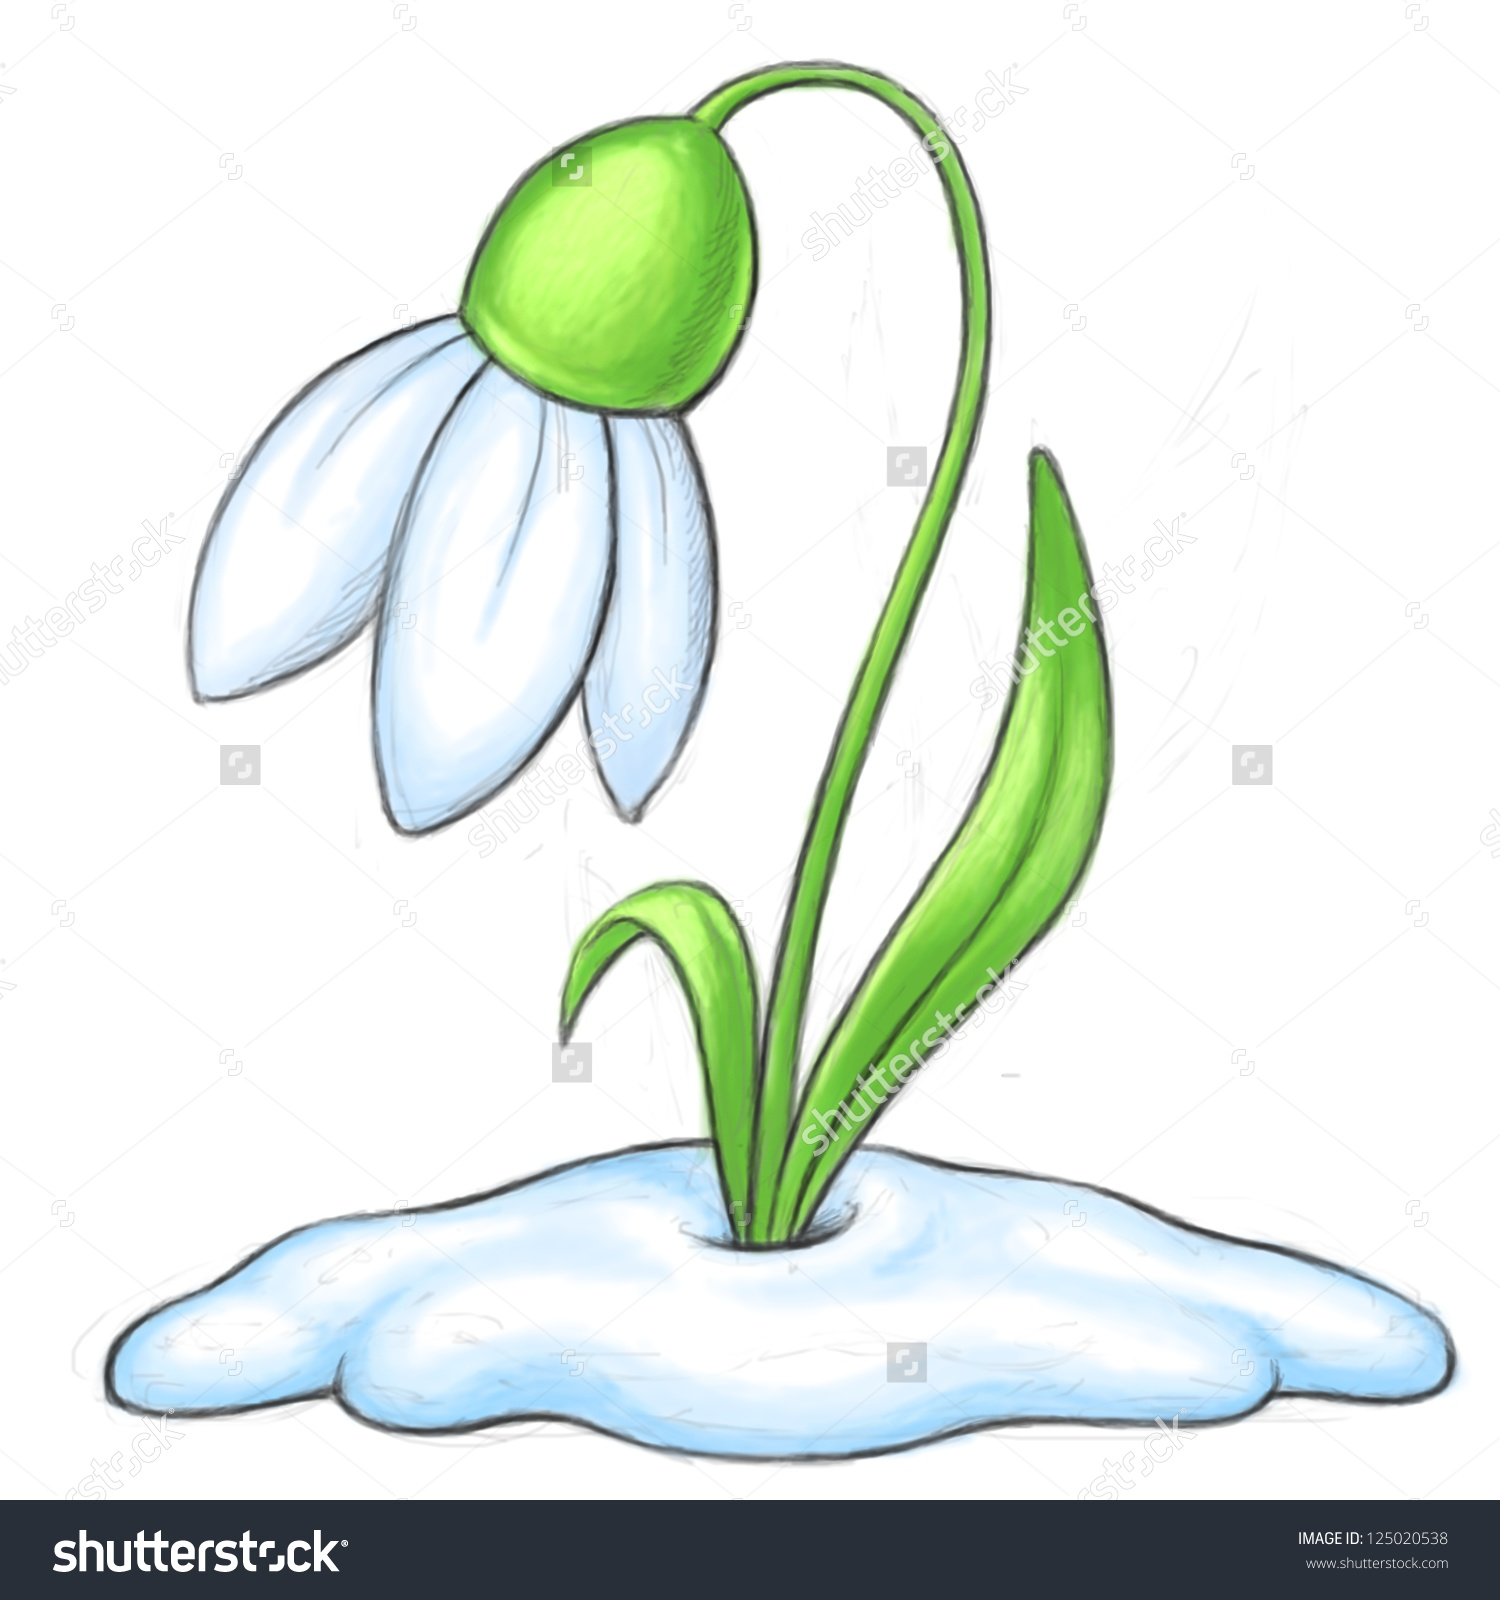 Snowdrop Cartoon Illustration Bitmap Clipart Stock Illustration.